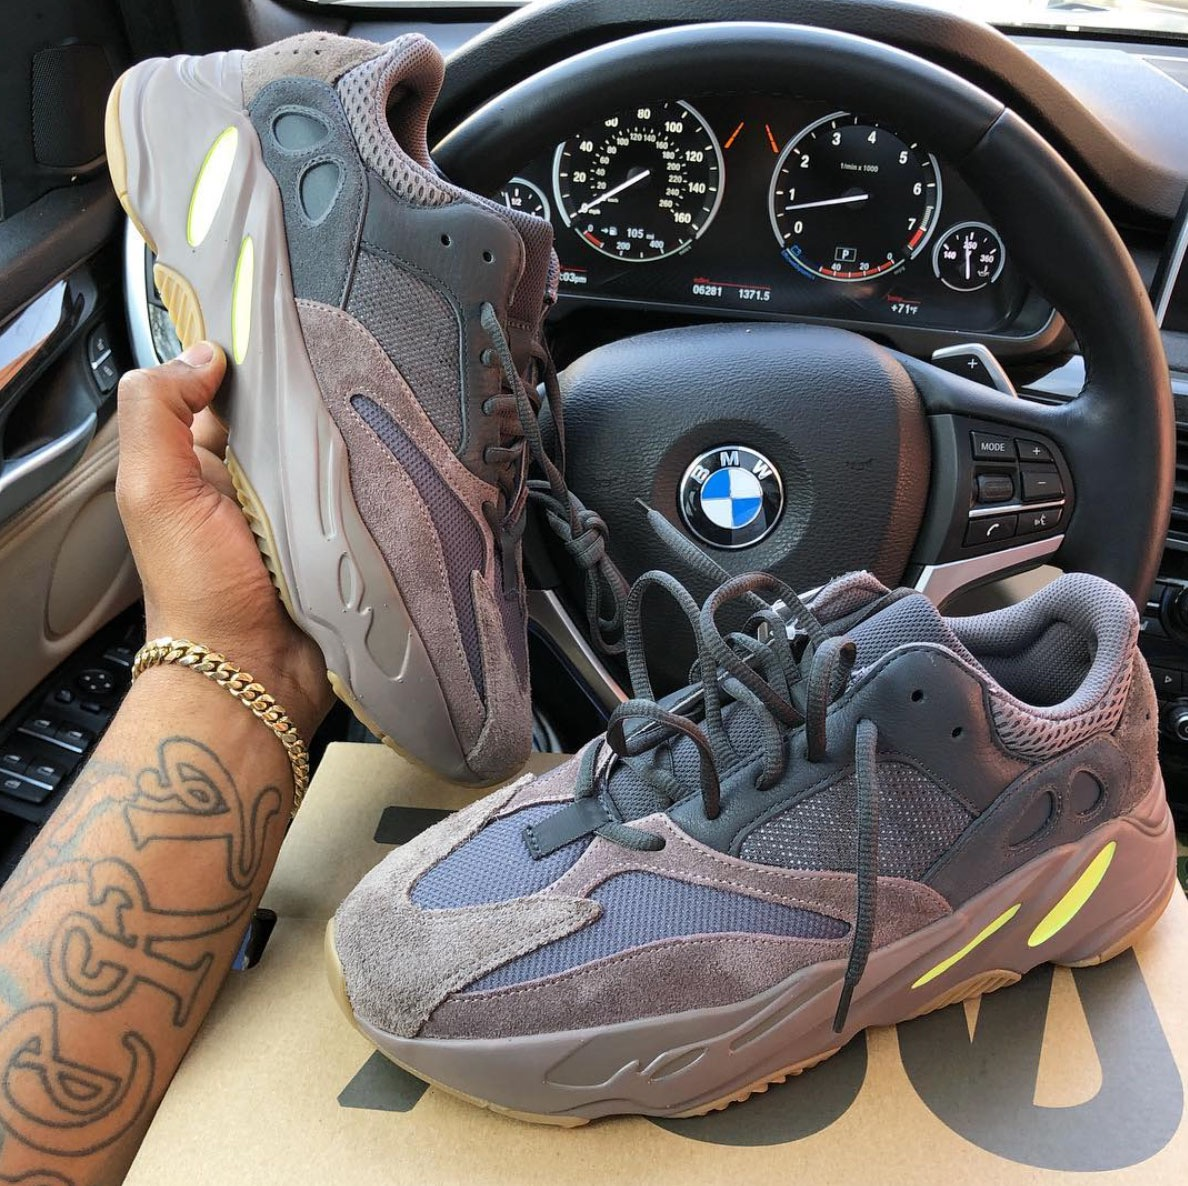 f4a1b5392cd24 Mauve adidas Yeezy Boost 700 Release Date October 27